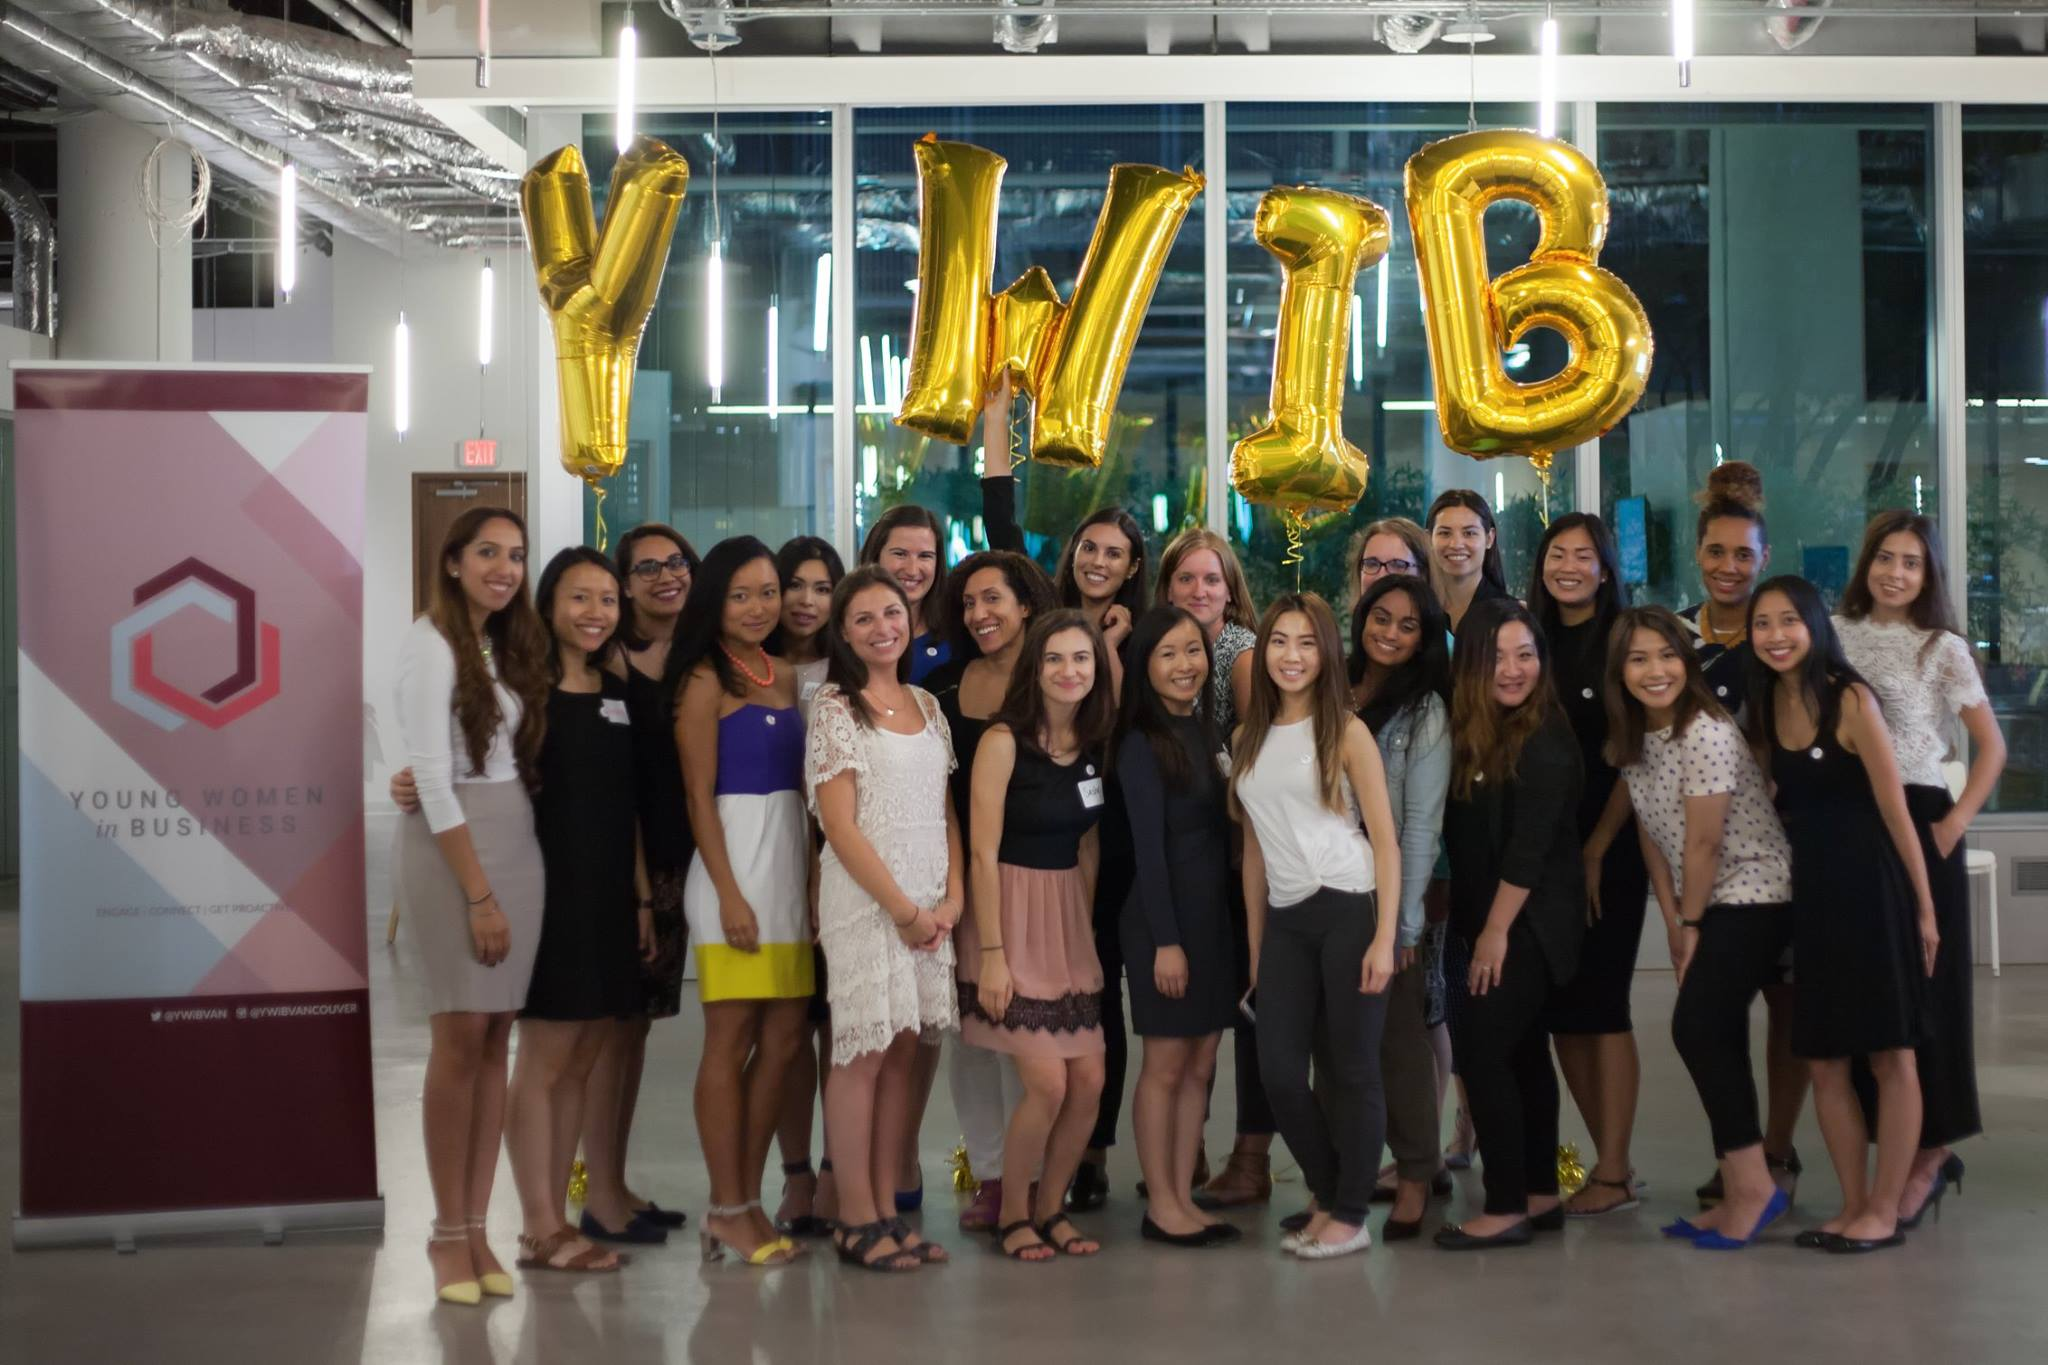 ywib-vancouver-team-open-house-2017.jpg